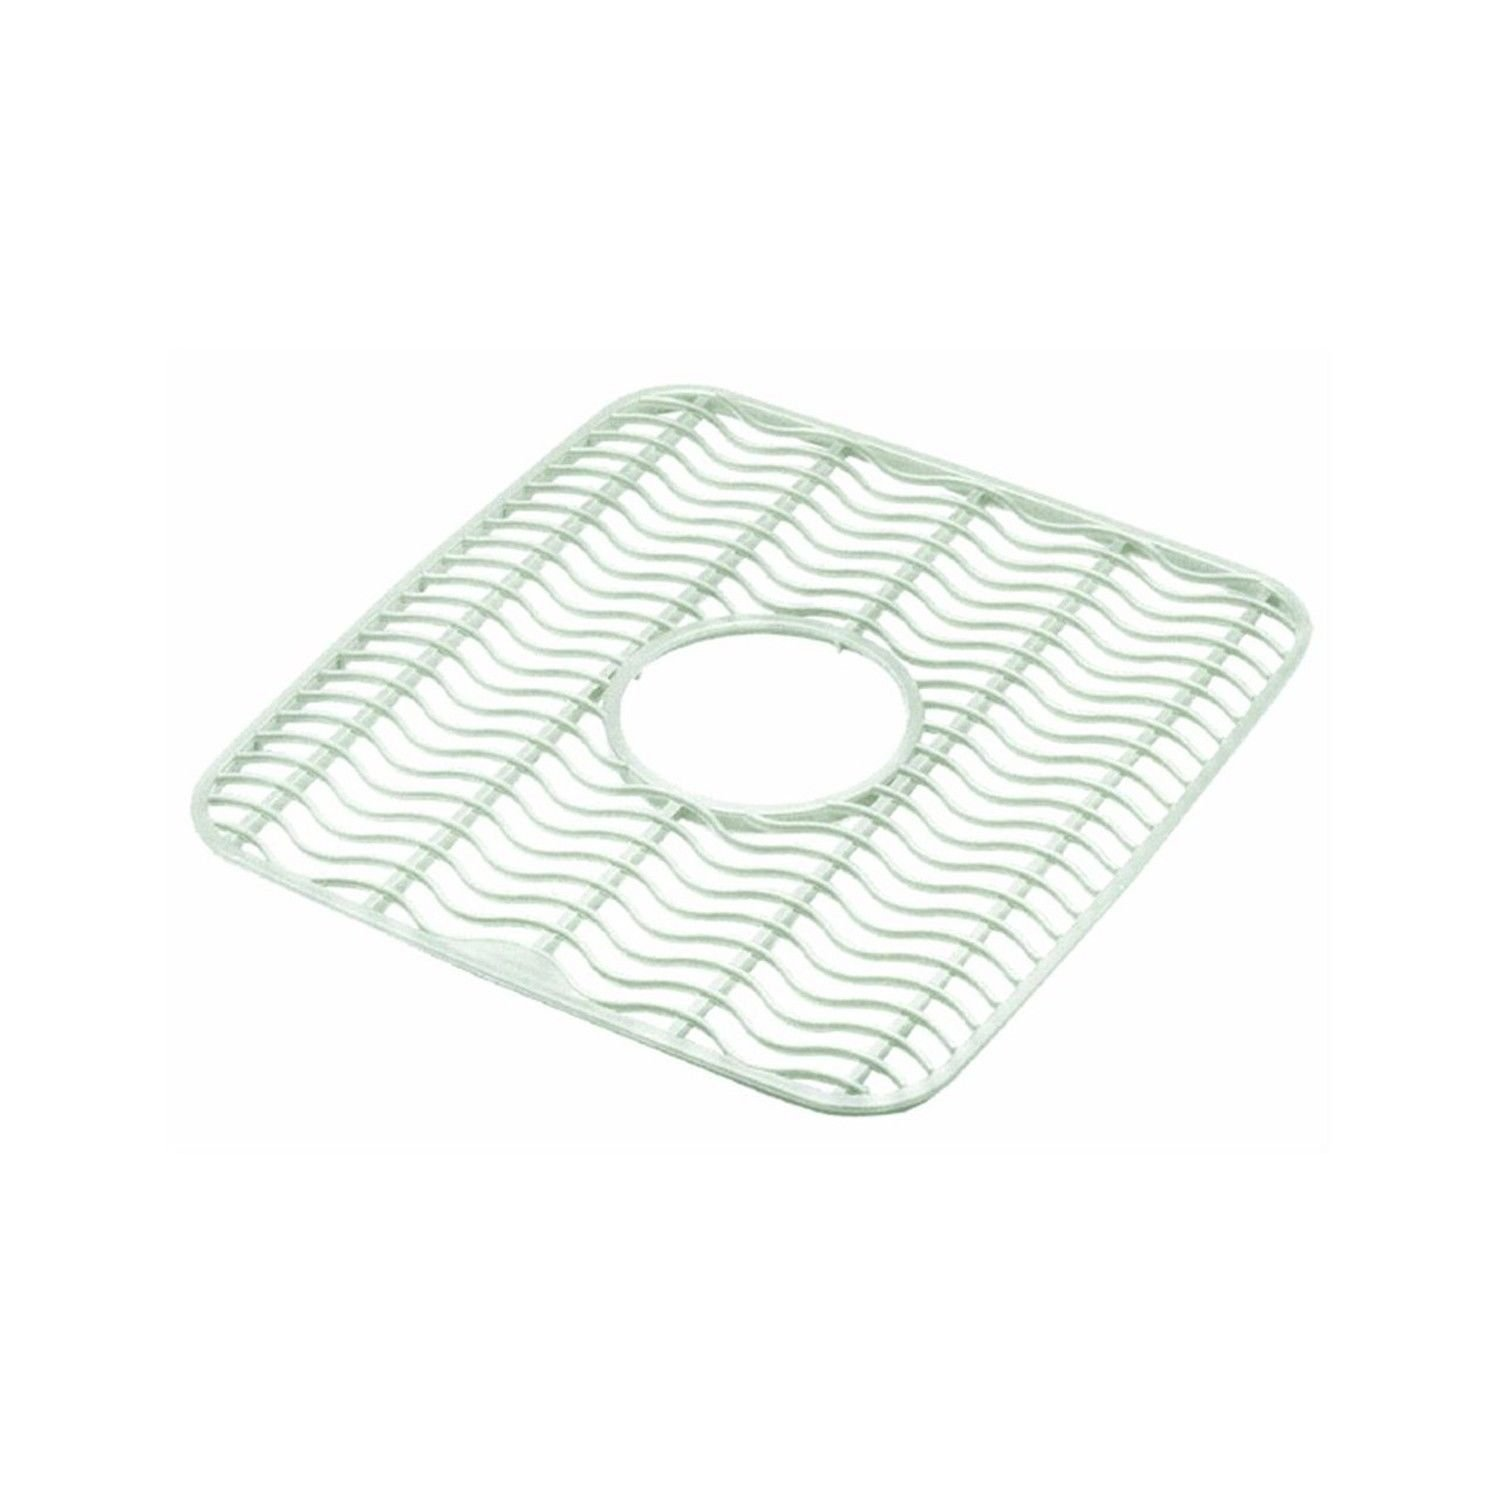 Rubbermaid SM SINK PROTECTOR